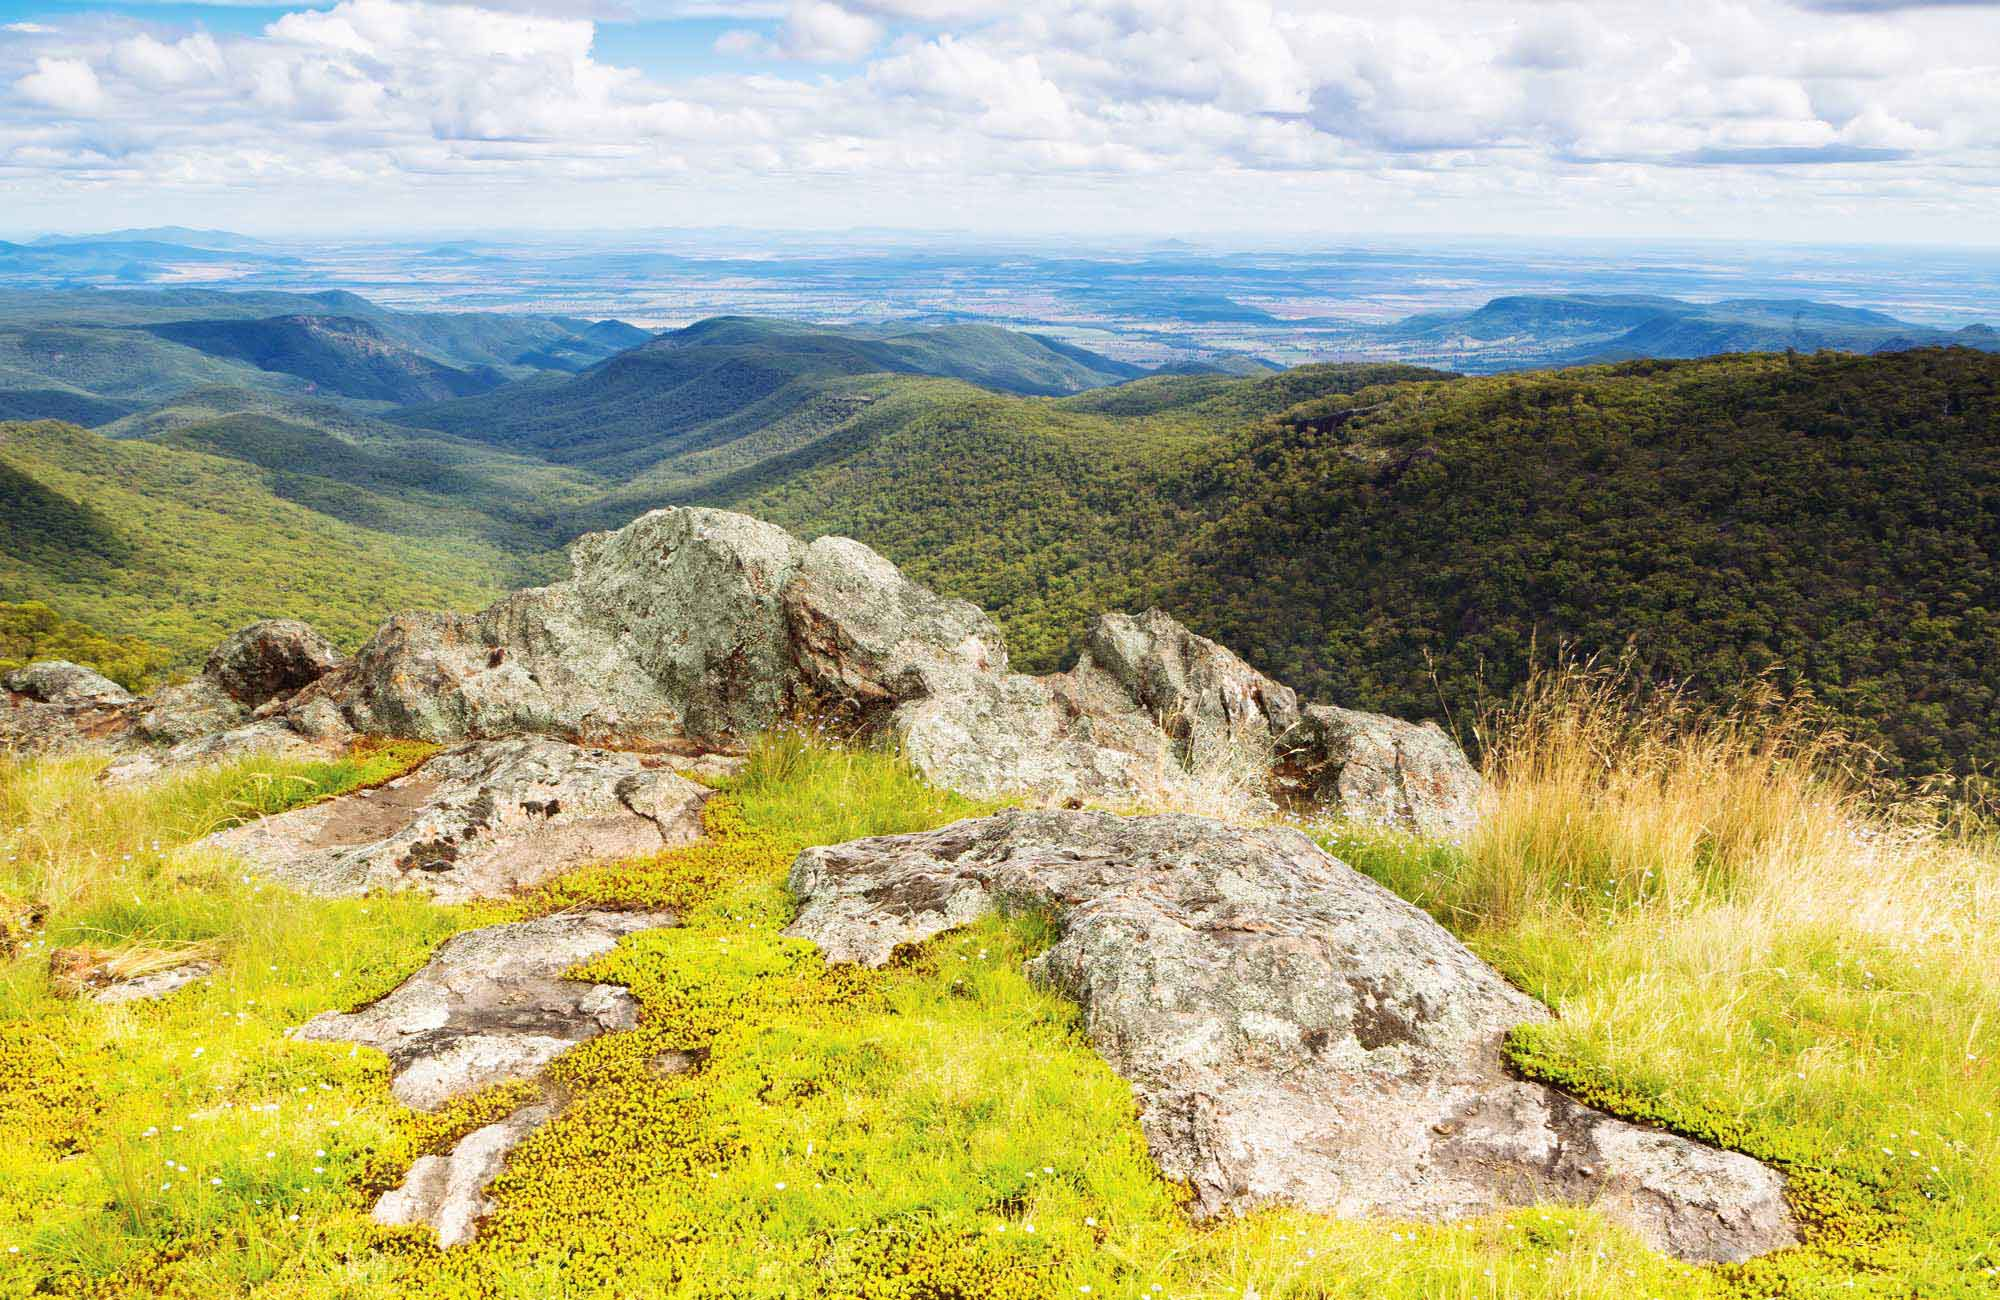 View across landscape of Mount Kaputar National Park. Photo: Rob Cleary